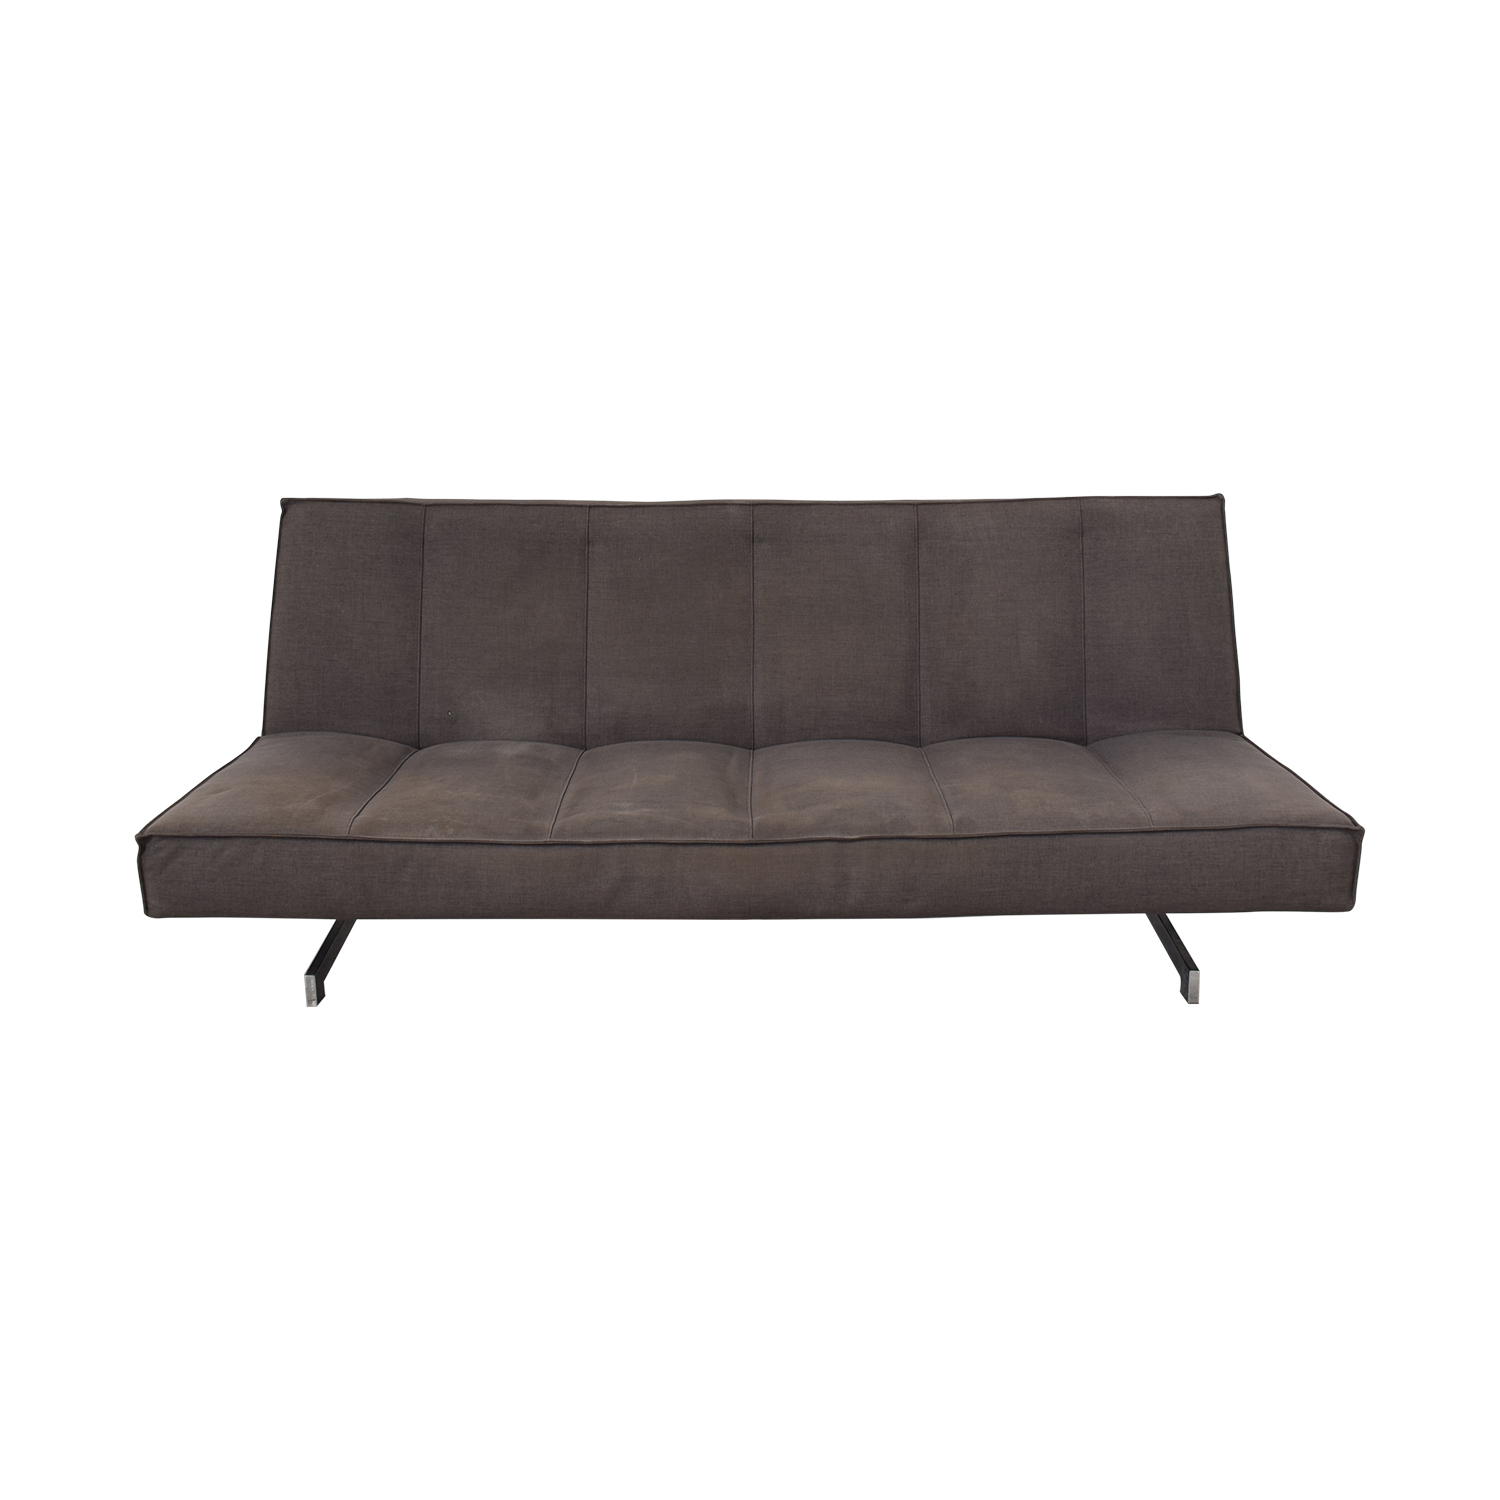 CB2 CB2 Flex Gravel Tufted Sleeper Sofa dimensions